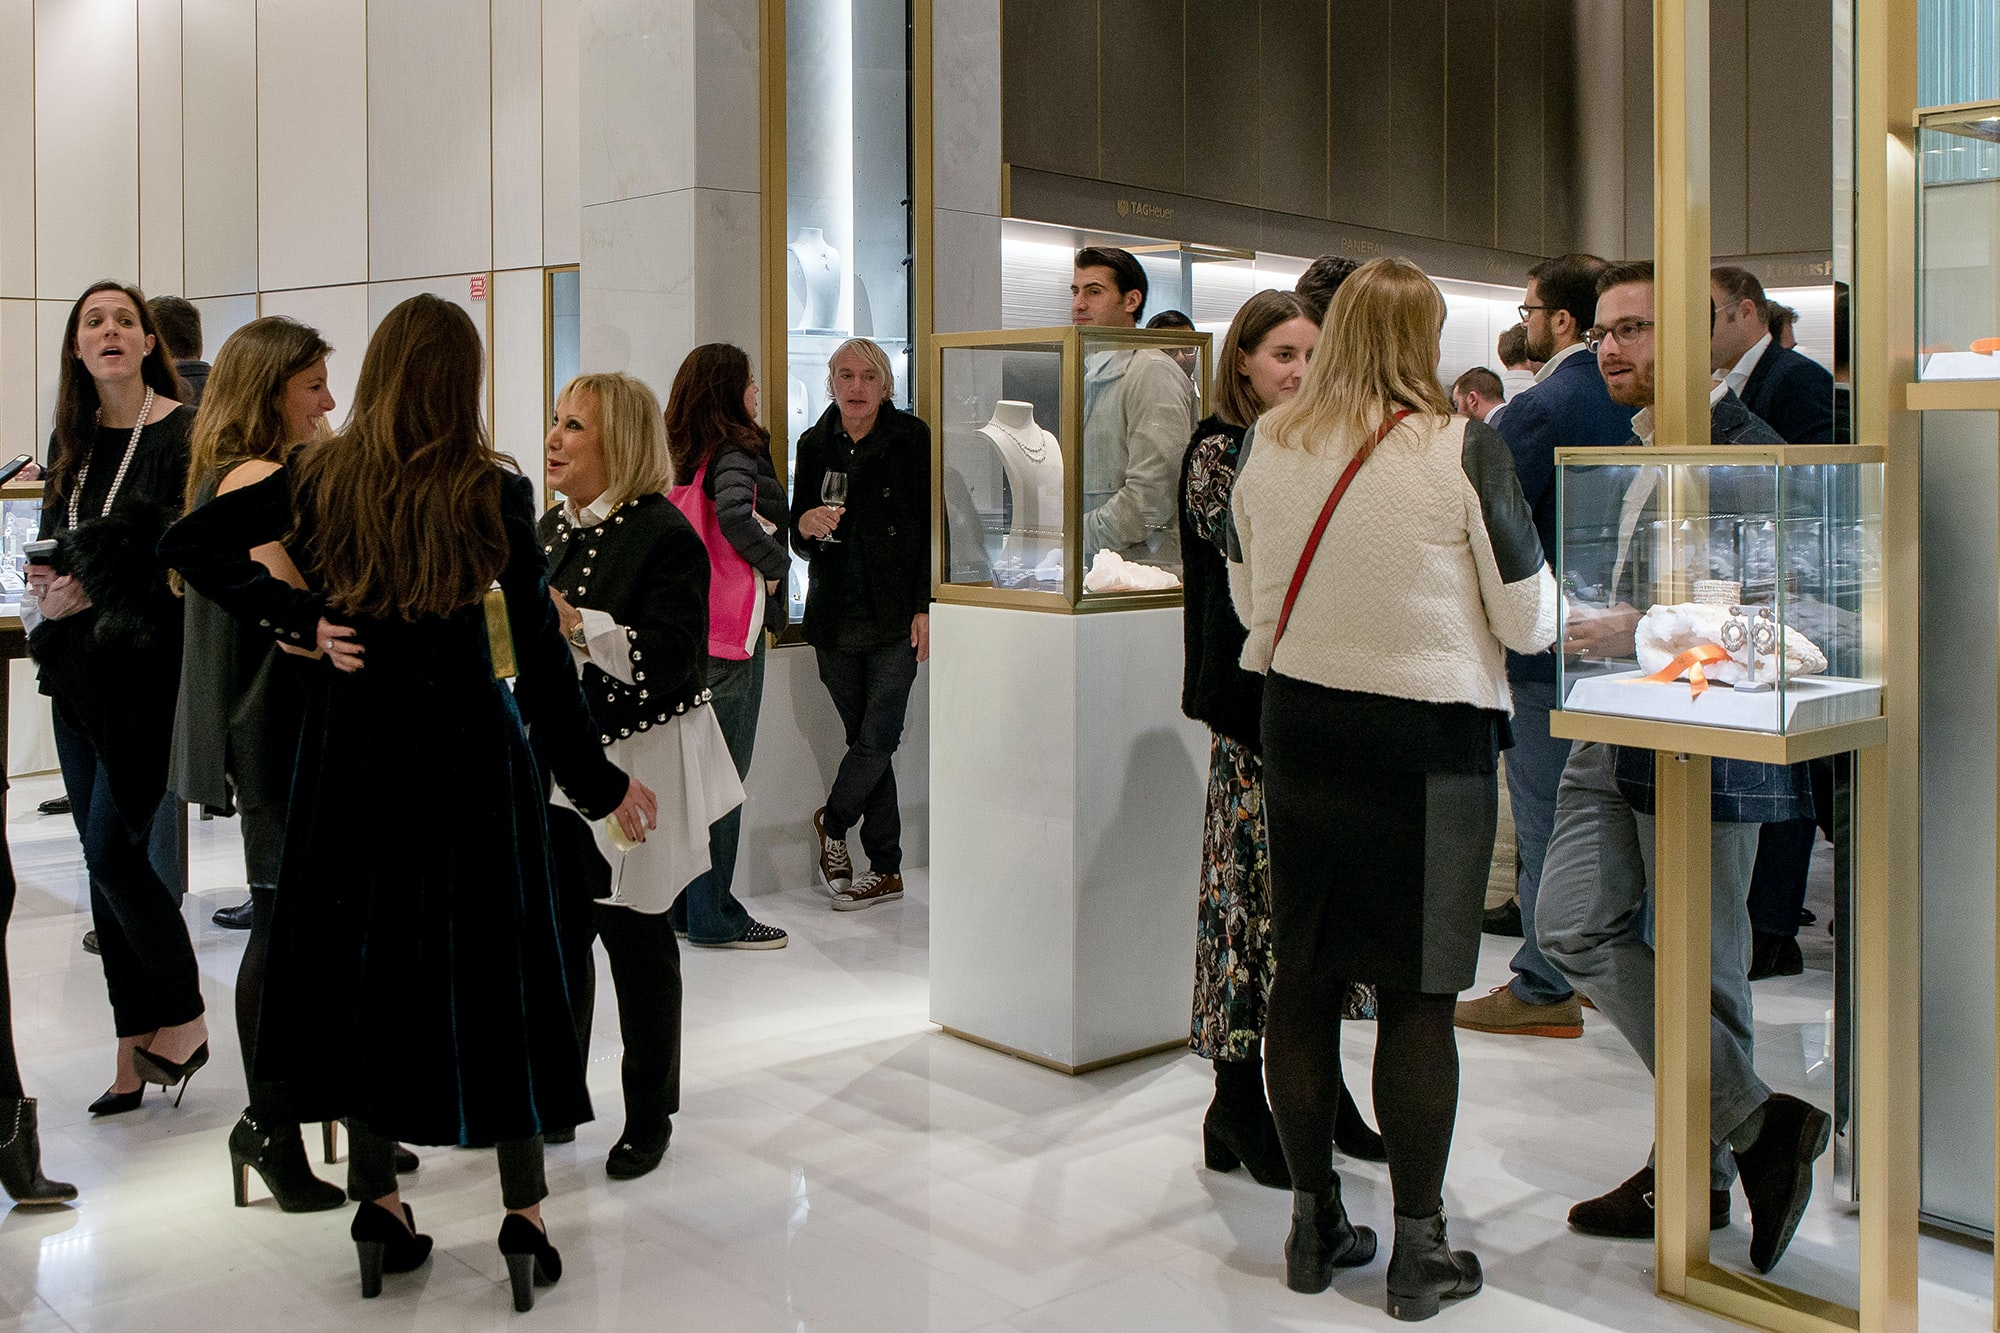 Photo Report: HODINKEE Celebrates London Jewelers' New Store In New York City's Oculus Photo Report: HODINKEE Celebrates London Jewelers' New Store In New York City's Oculus 20161109 LondonJewelersxHodinkee 077